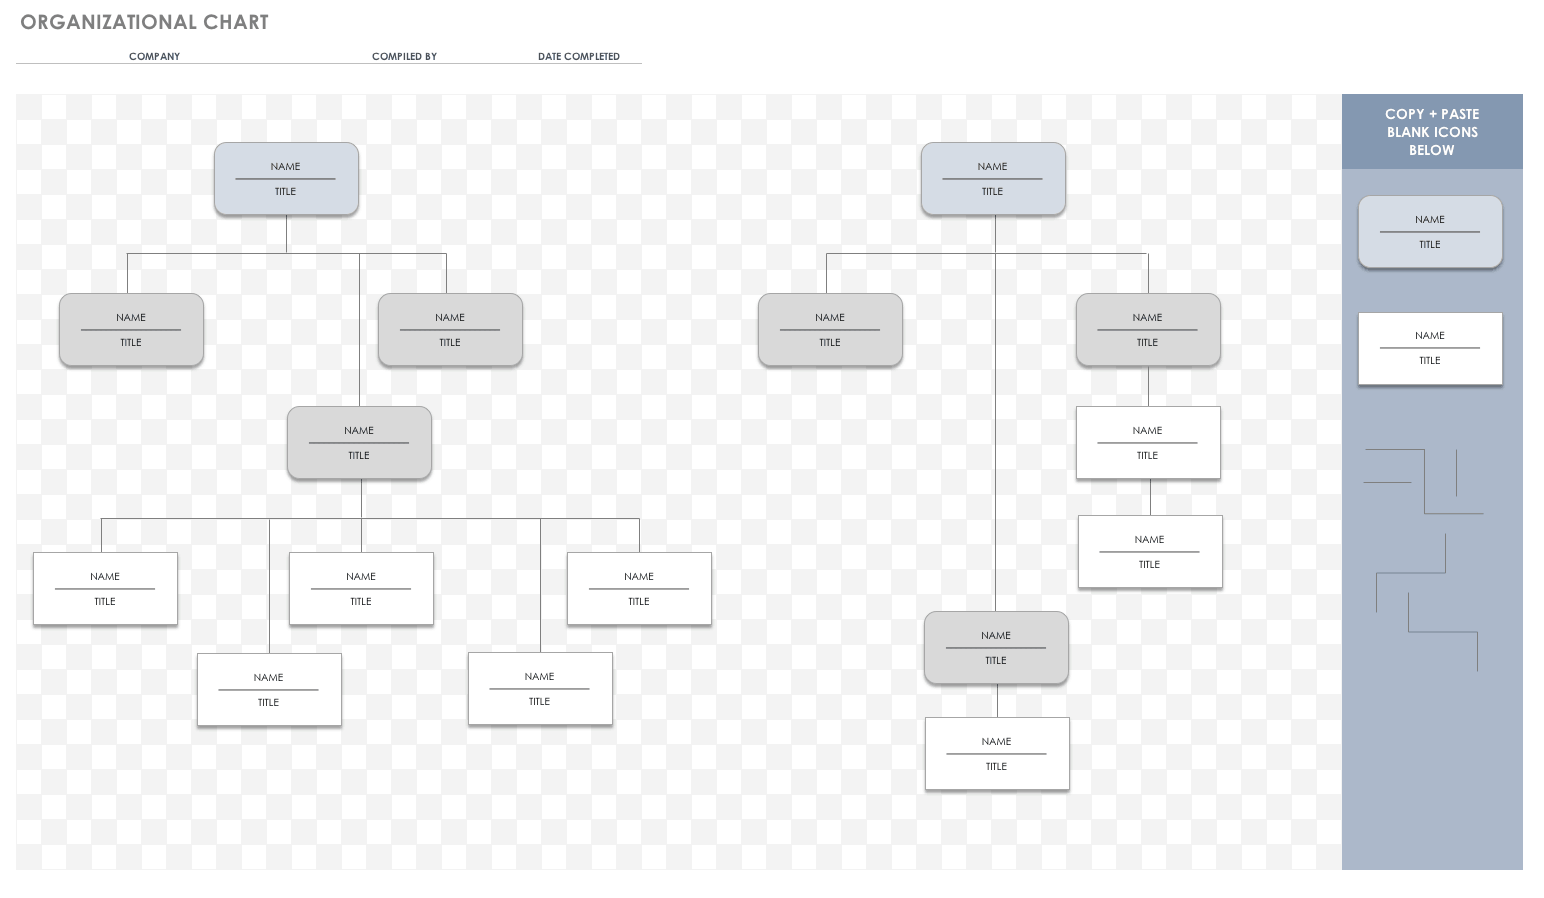 Free Org Chart Templates For Excel Smartsheet